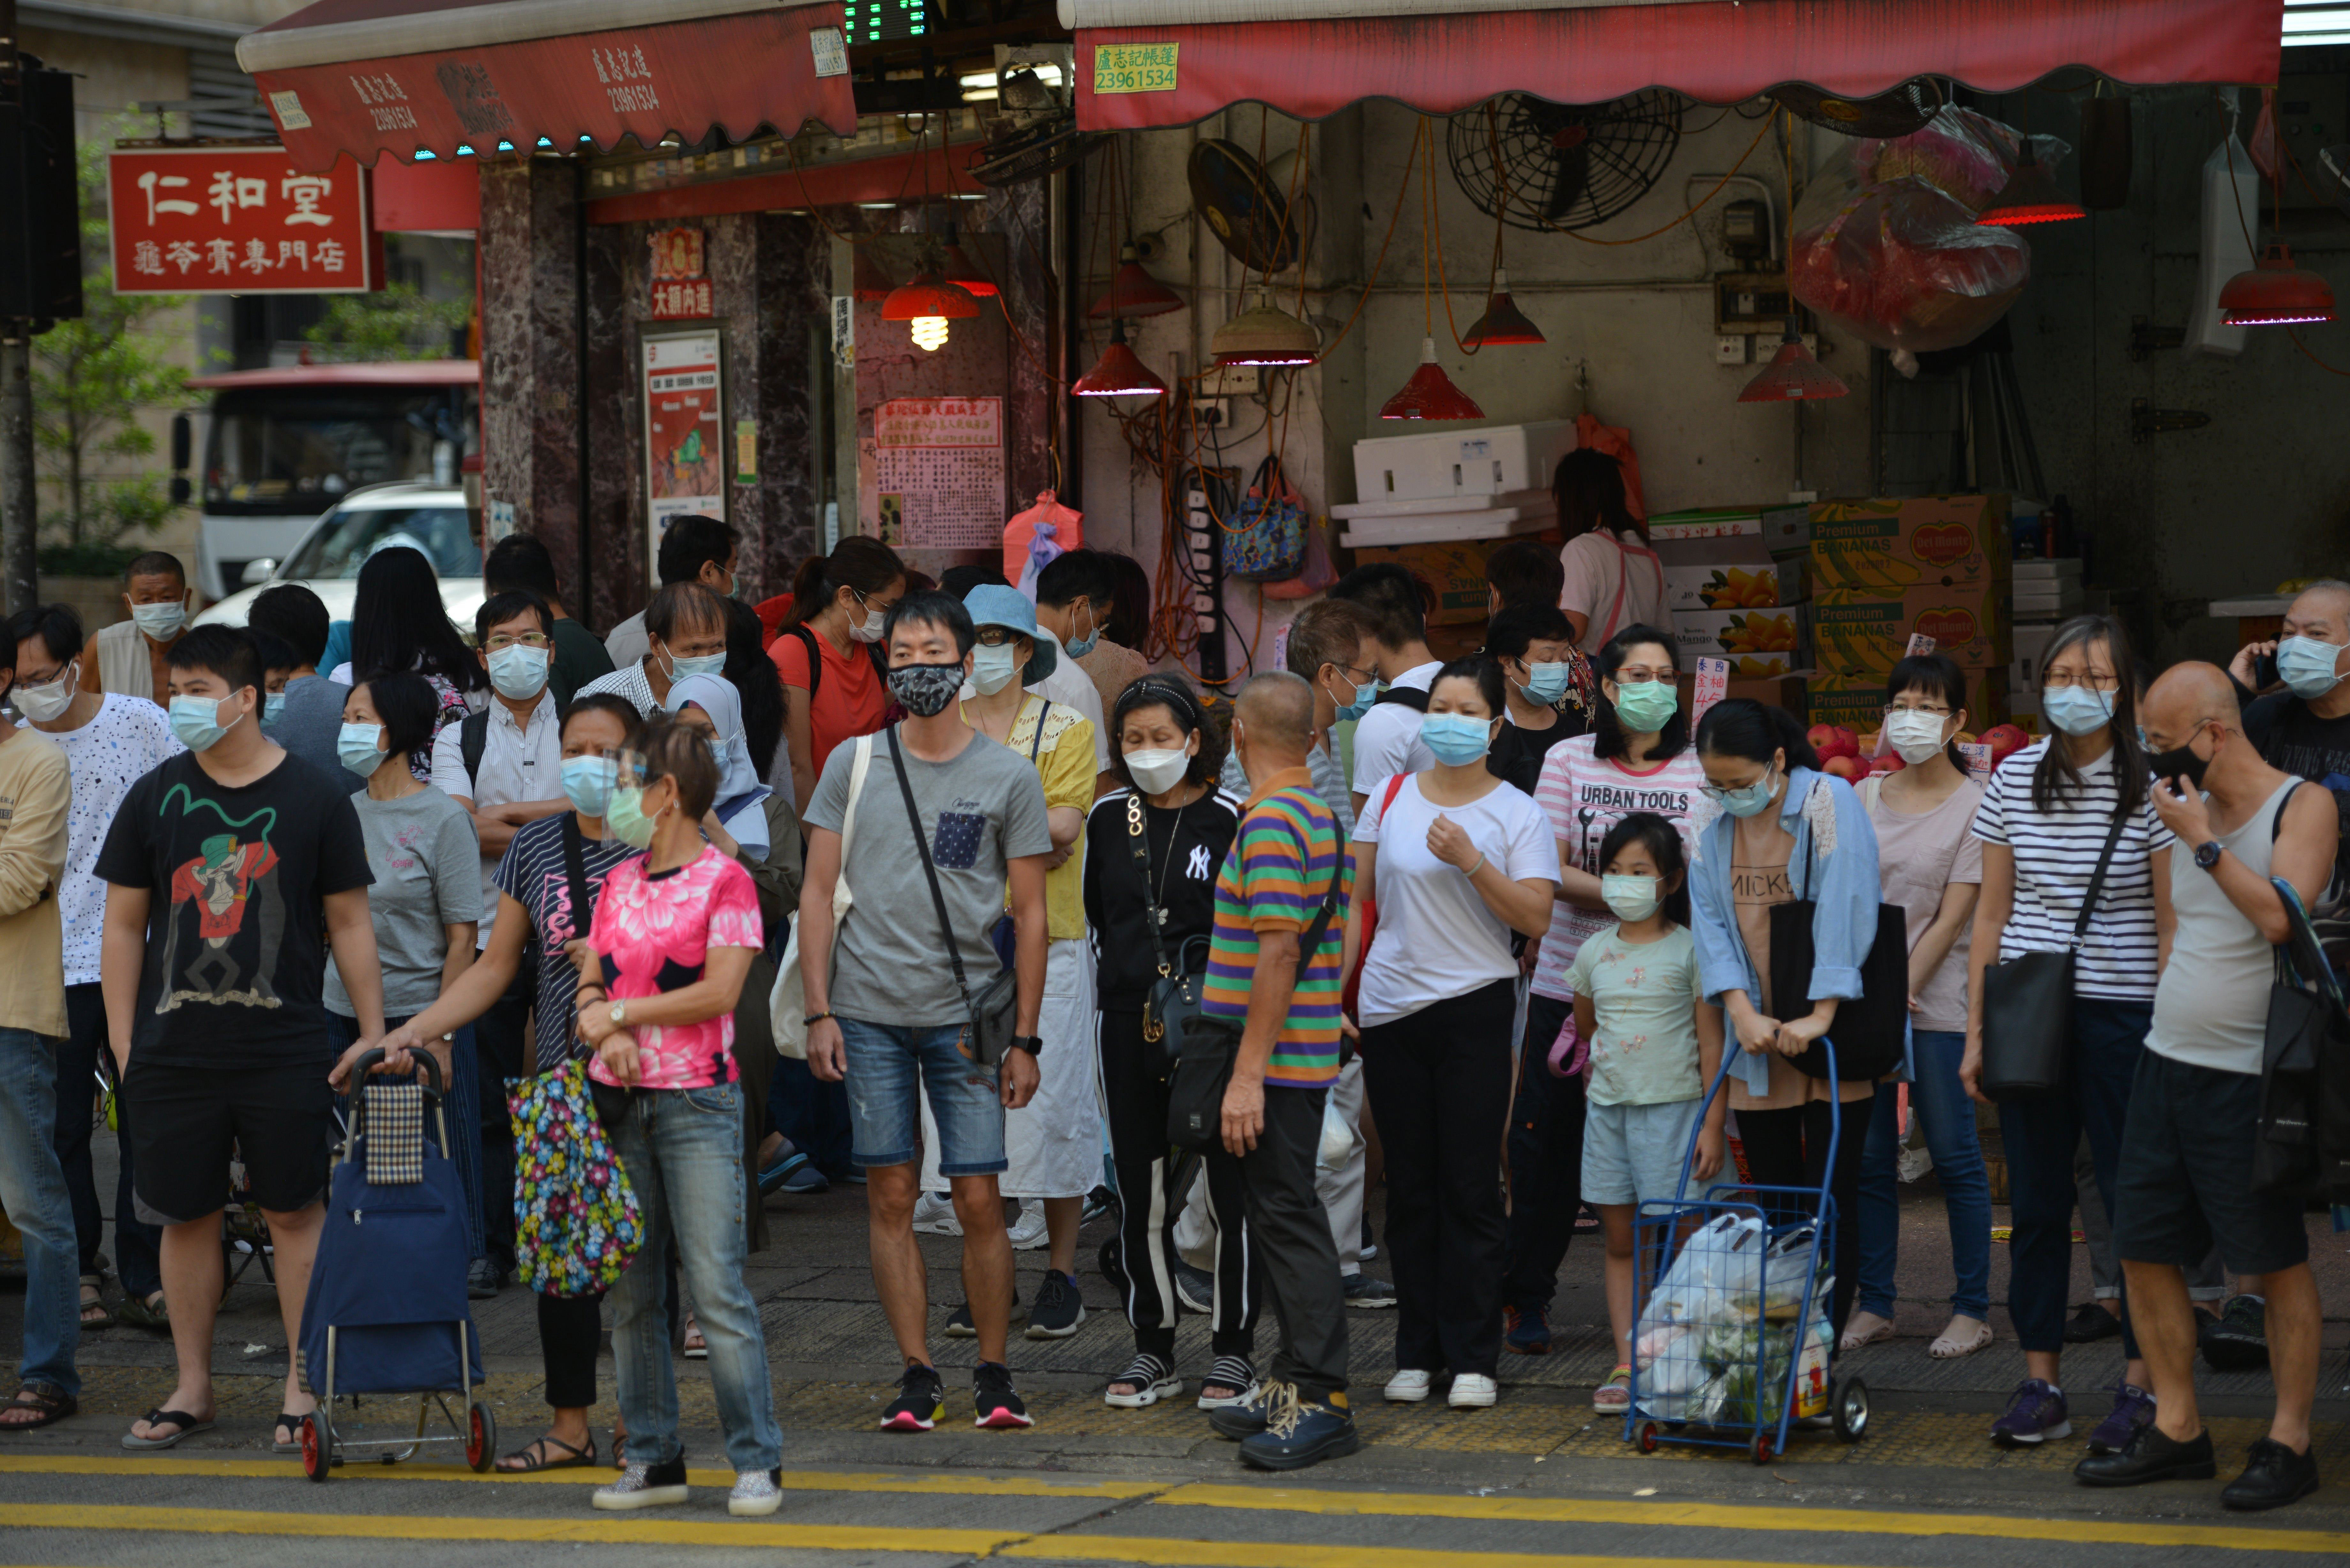 People in Hong Kong wait to cross a road on October 18.